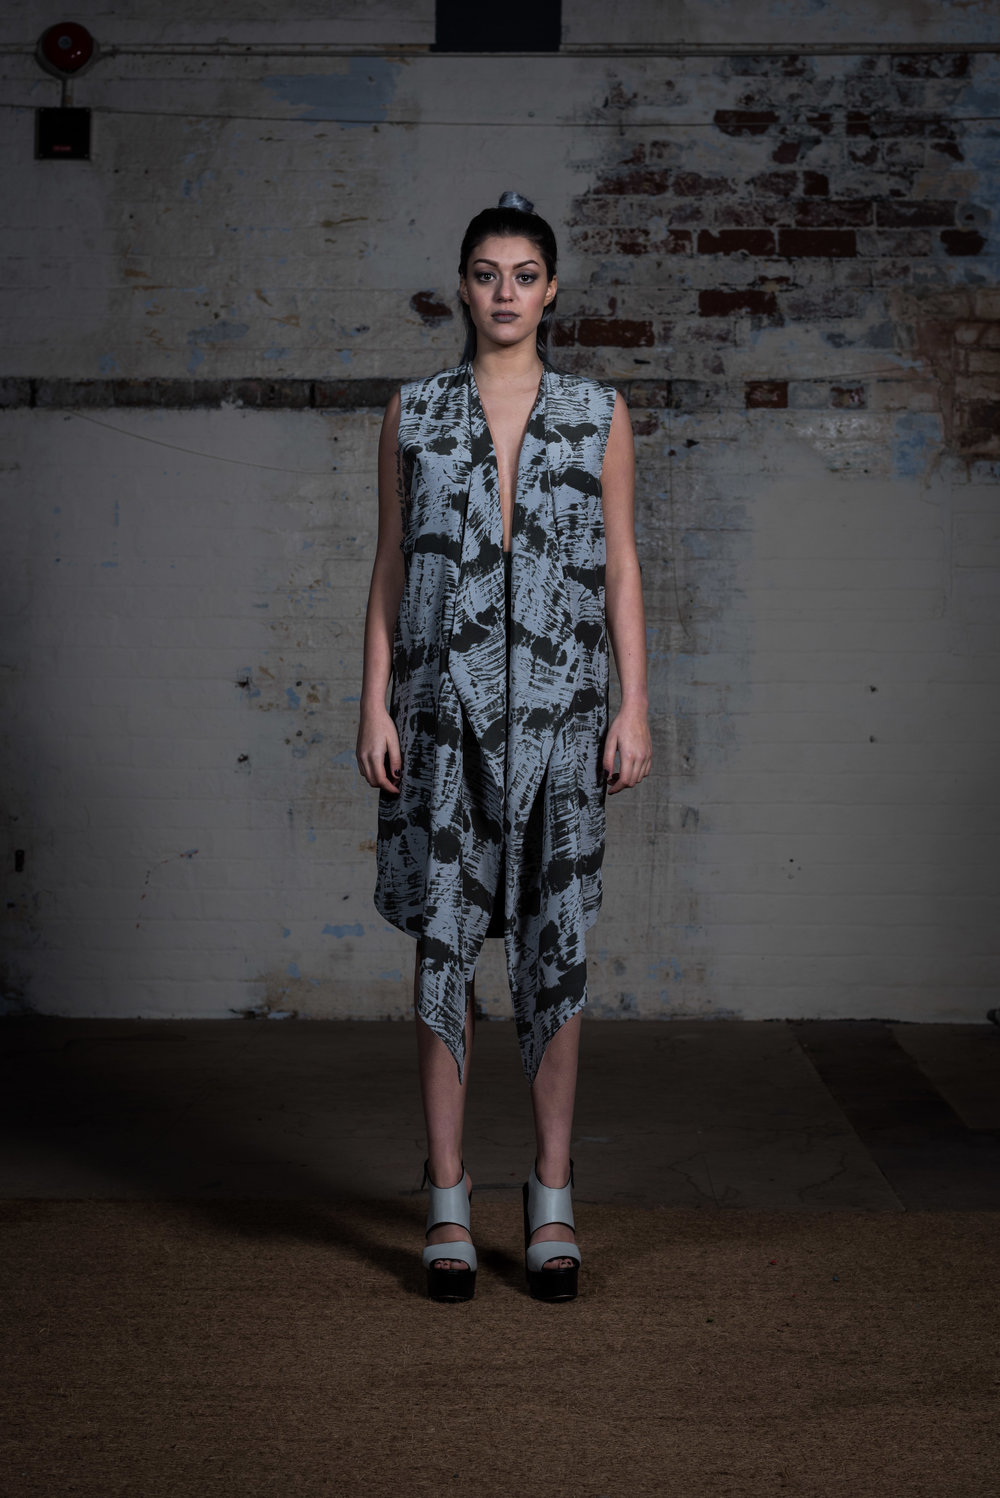 zaramia-ava-zaramiaava-leeds-fashion-designer-ethical-sustainable-kyo-print-jacket-dress-versatile-drape-skirt-grey-yuko-cowl-dress-styling-location-womenswear-models-photoshoot-9